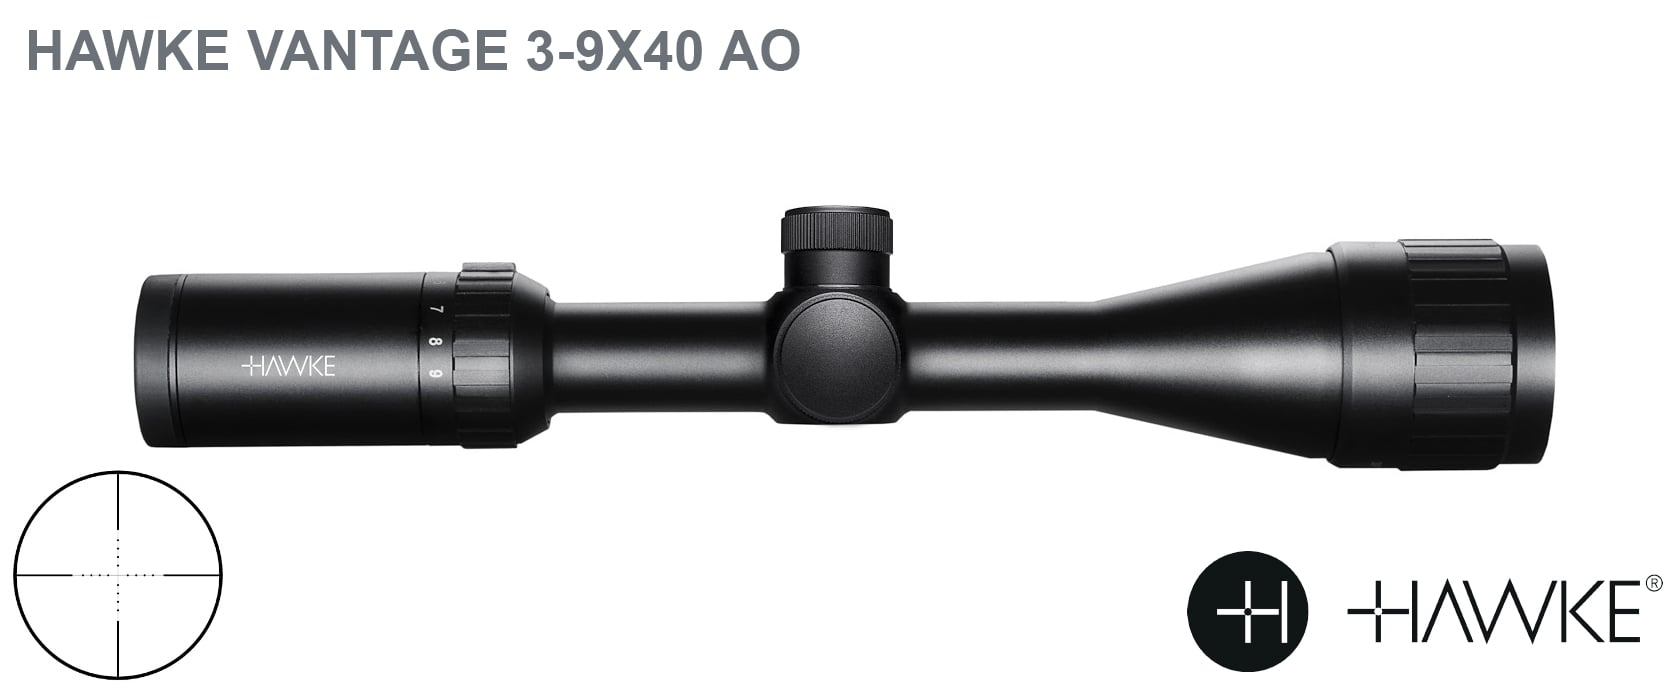 HAWKE VANTAGE 3-9X40 AO + 2PC HIGH MOUNTS